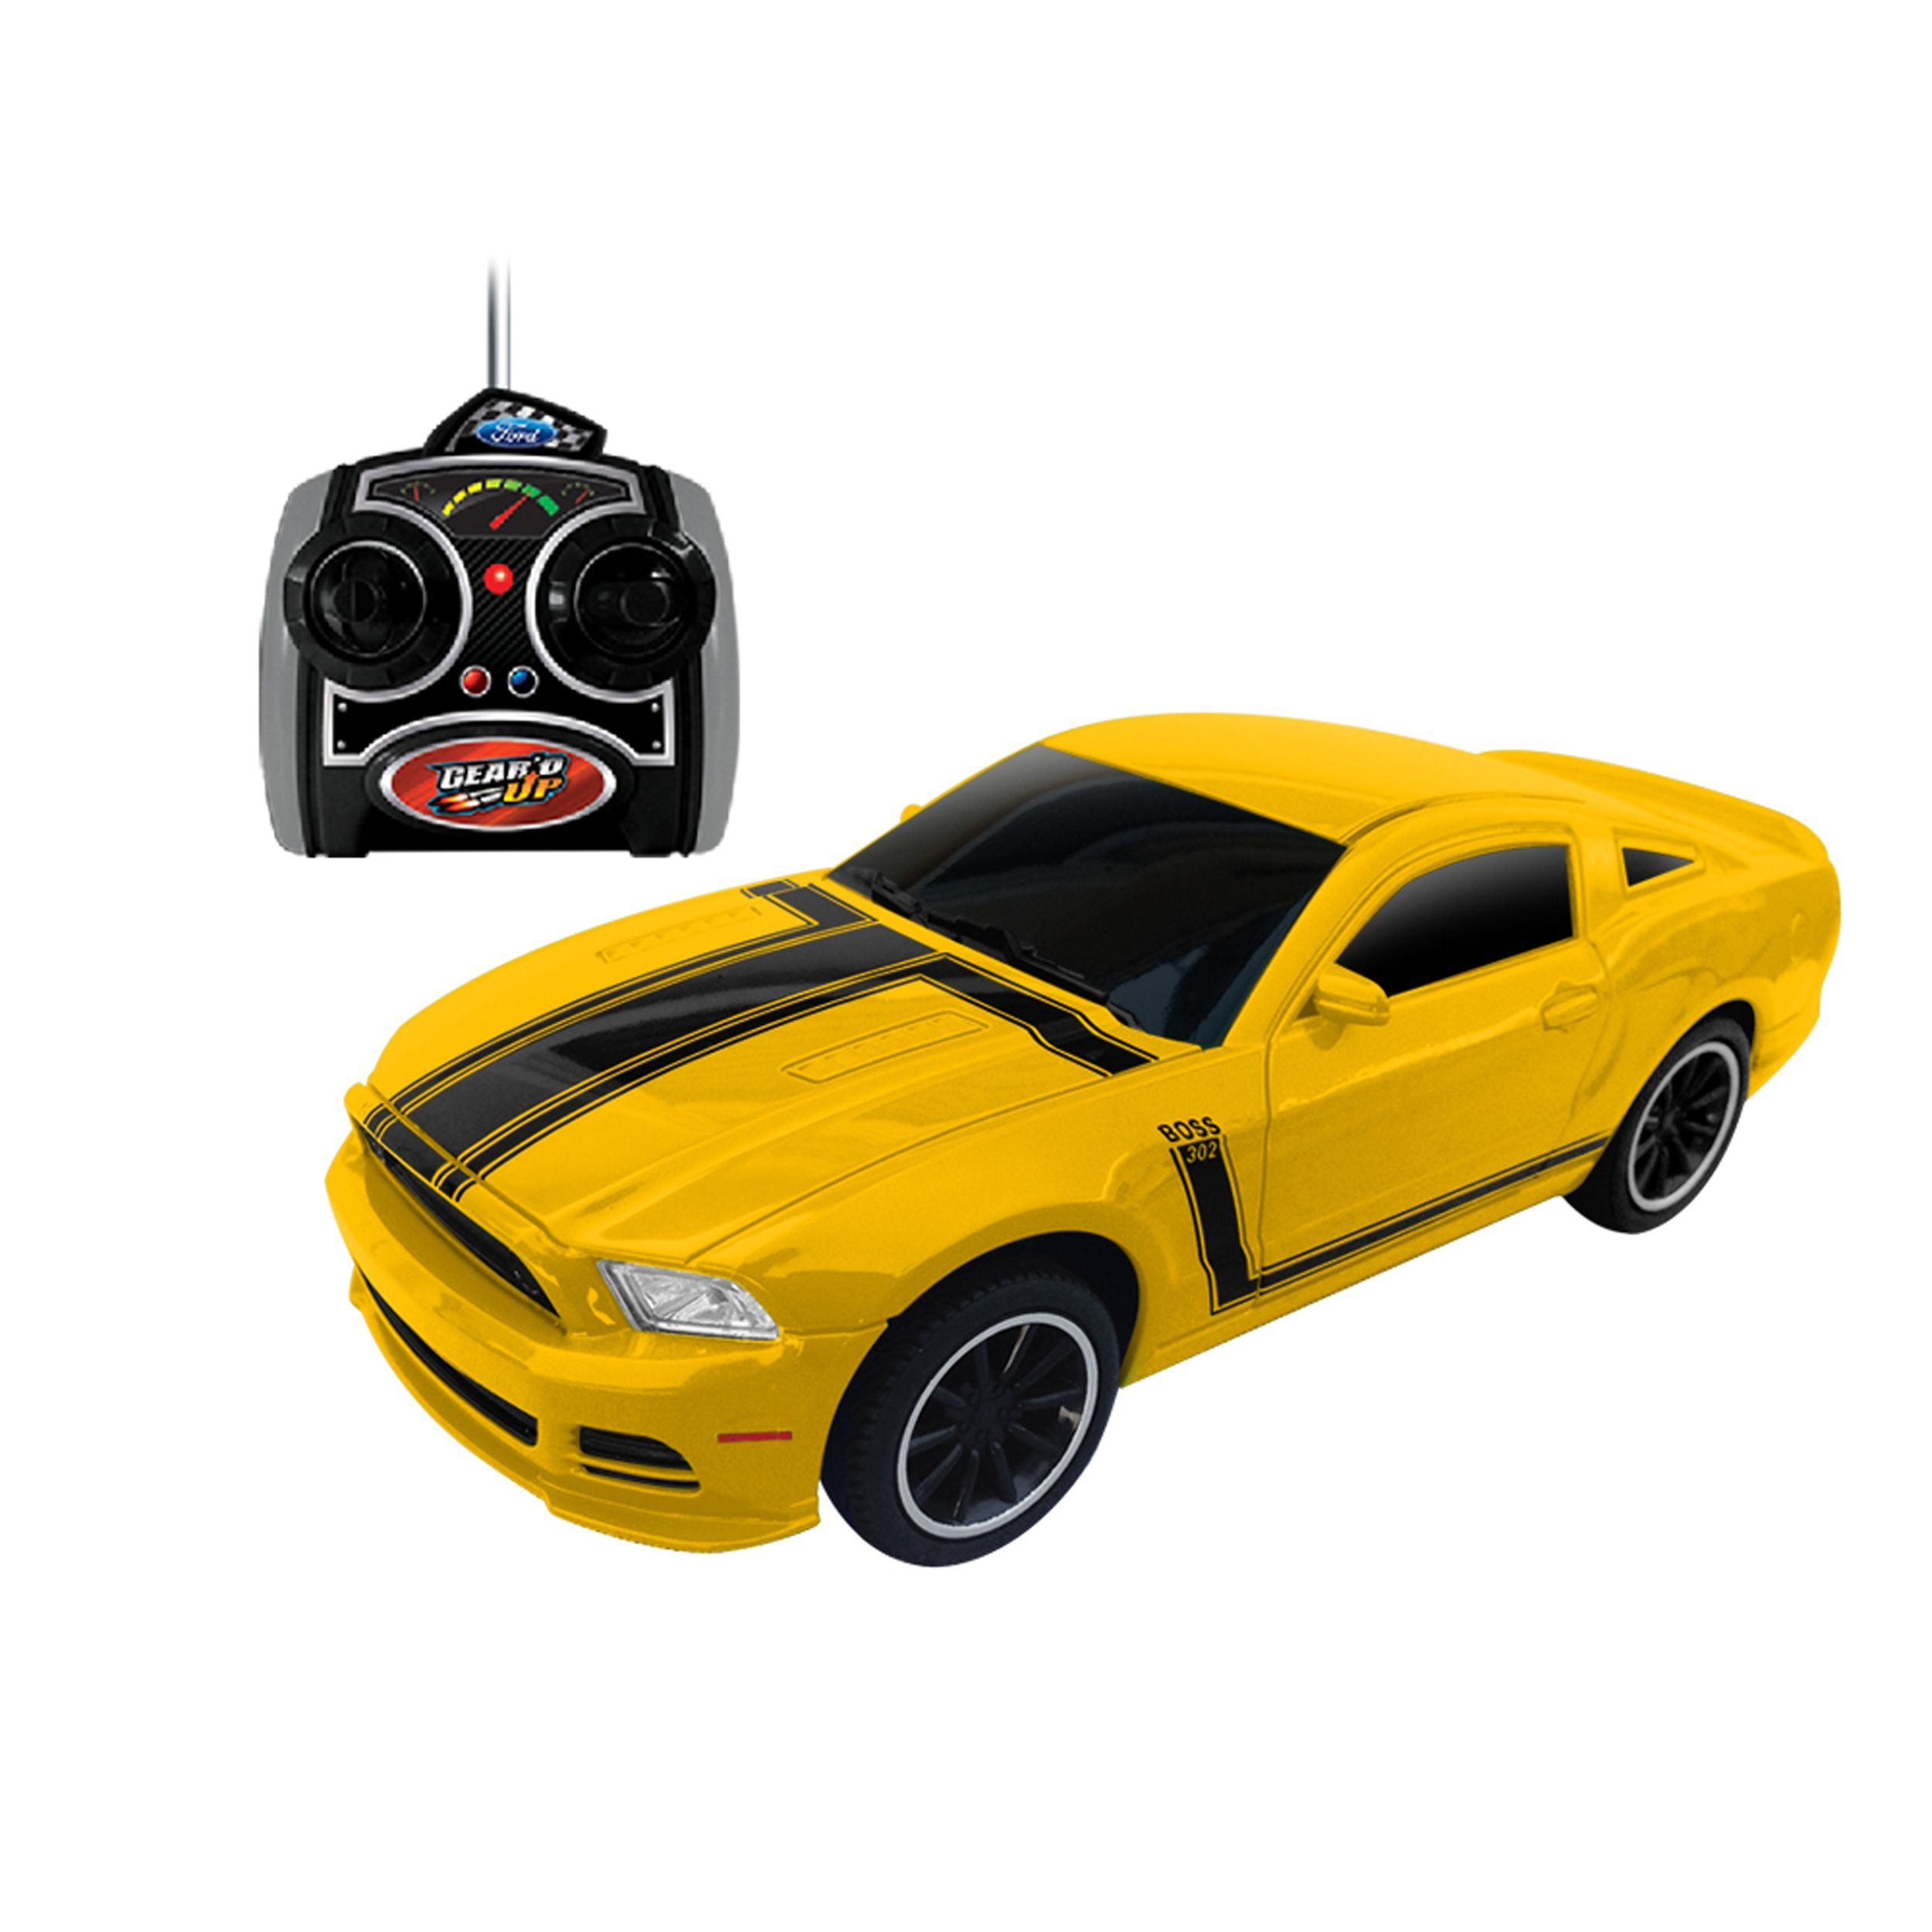 1:24 Scale Ford Mustang Boss 302 RC Gear\'d Up Yellow | Products ...